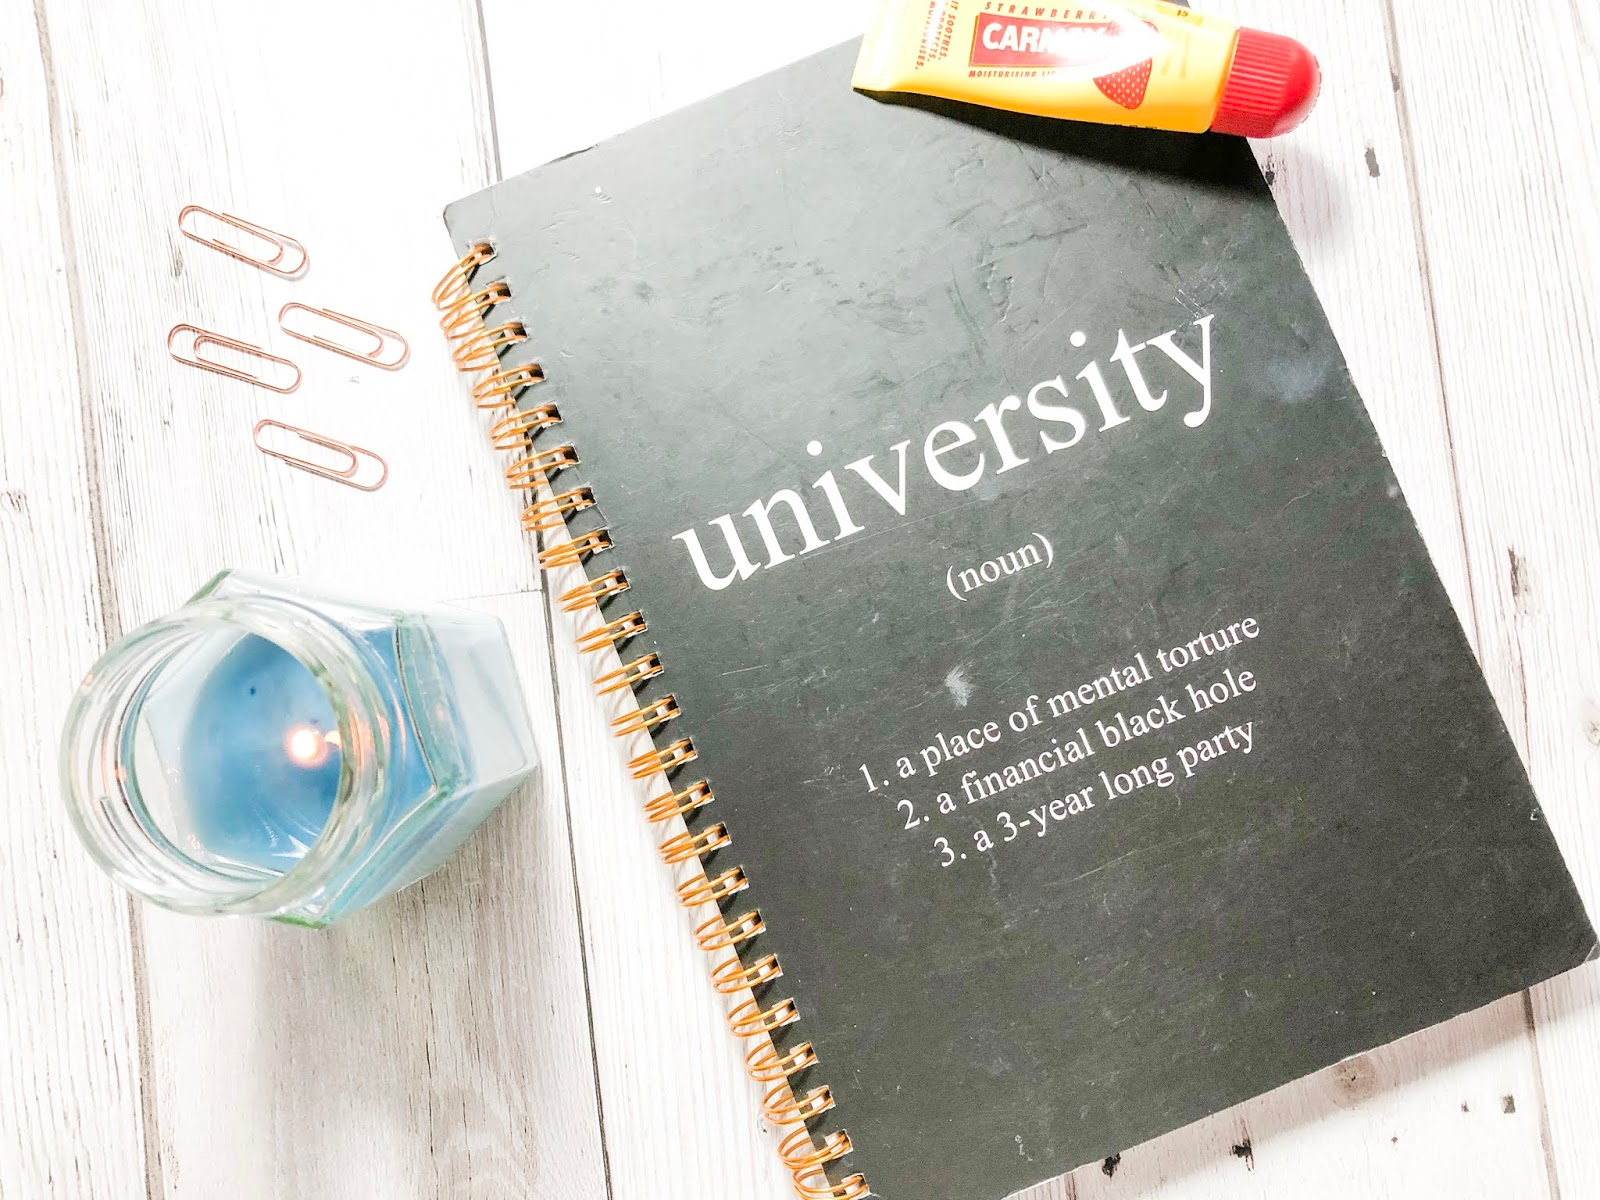 WHY UNI WAS THE RIGHT CHOICE FOR ME